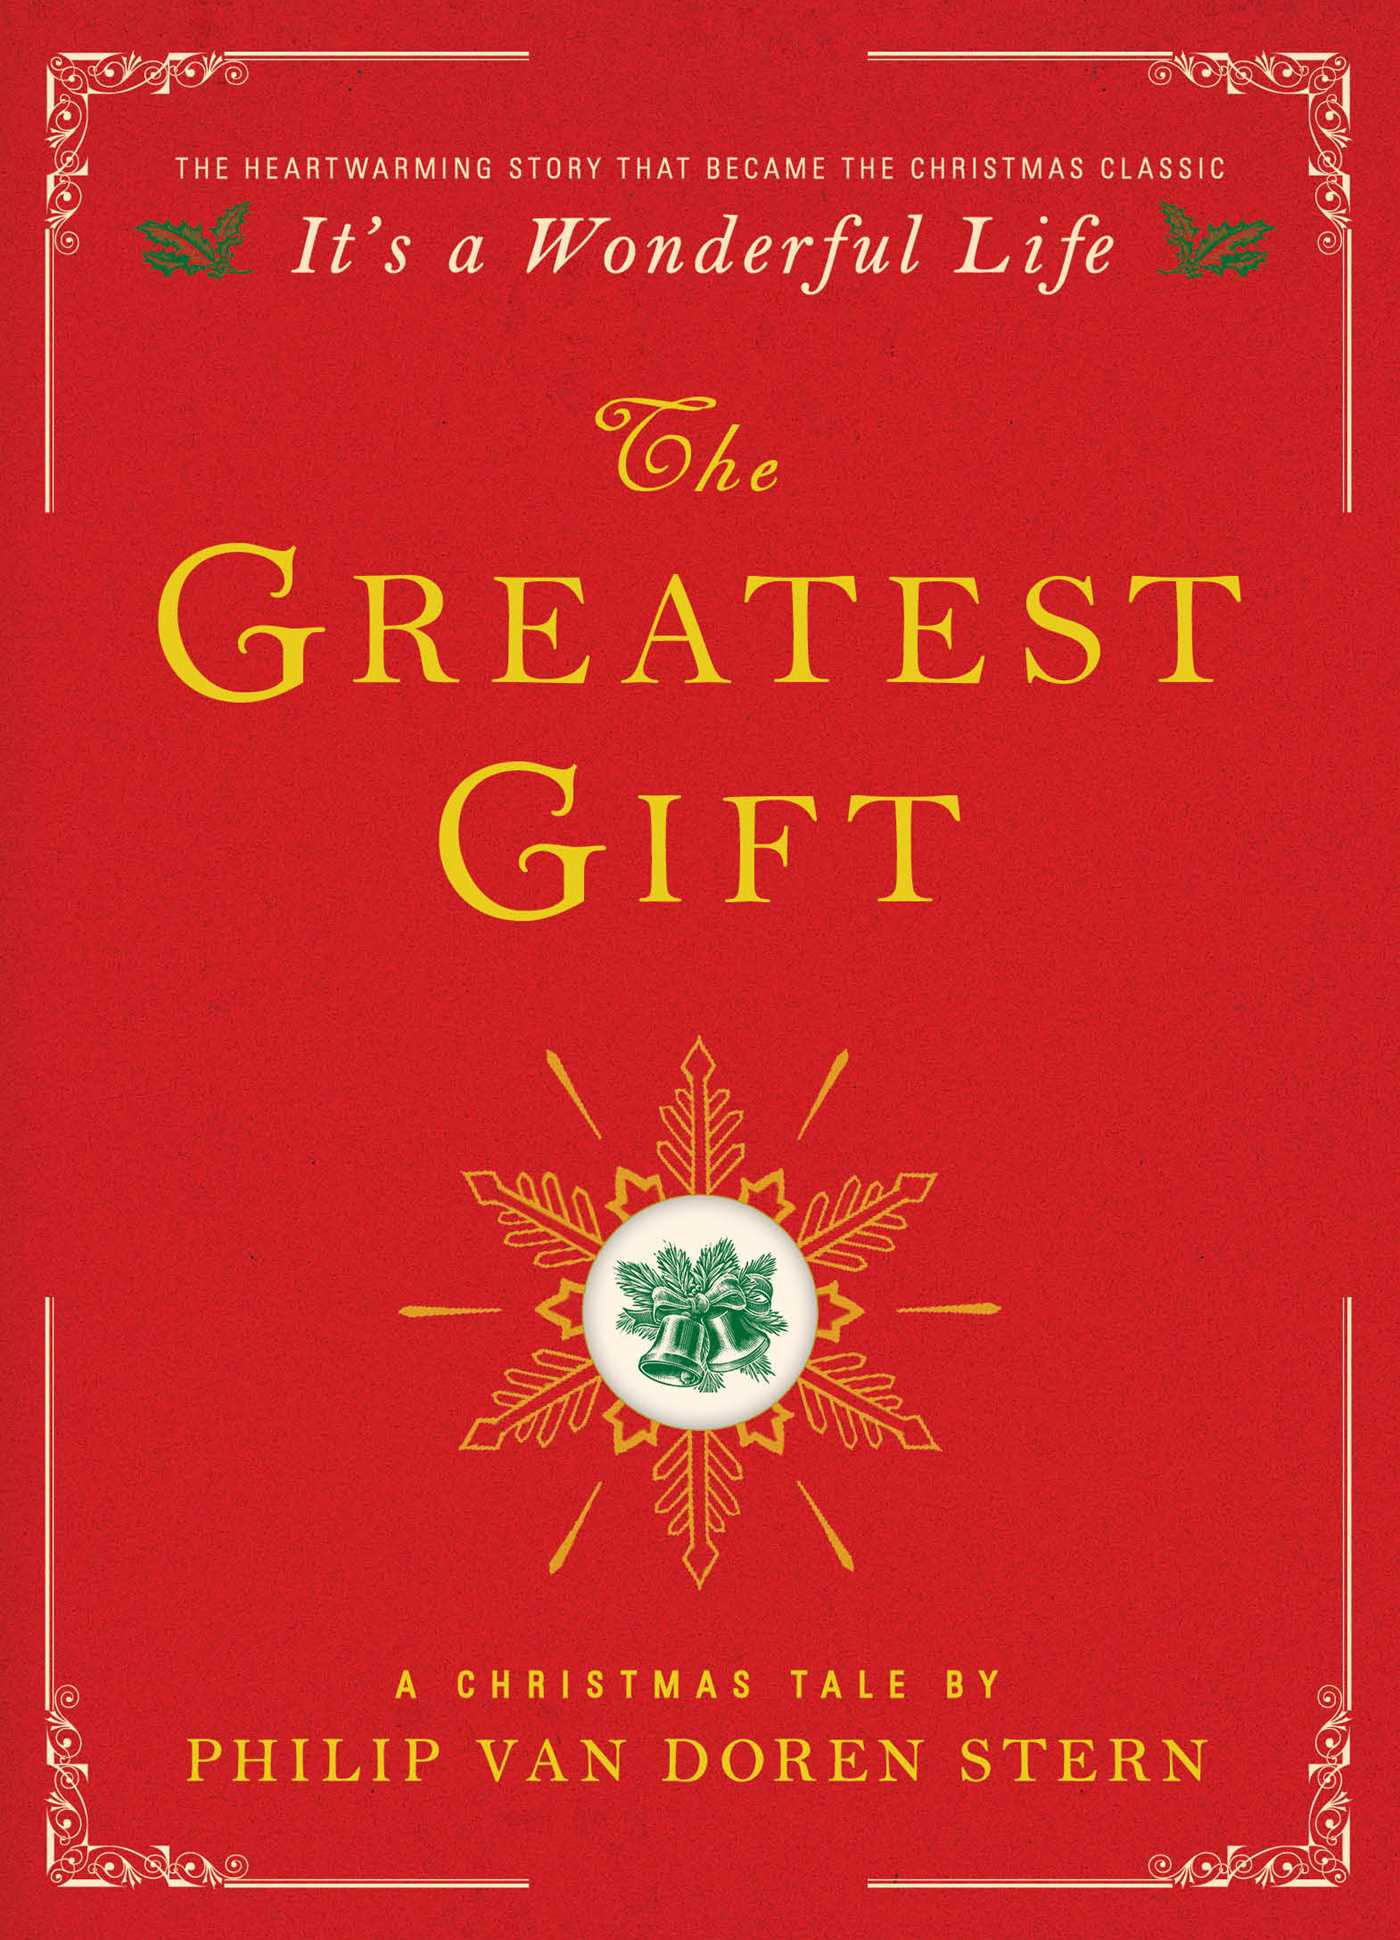 The Greatest Gift | Book by Philip Van Doren Stern | Official ...